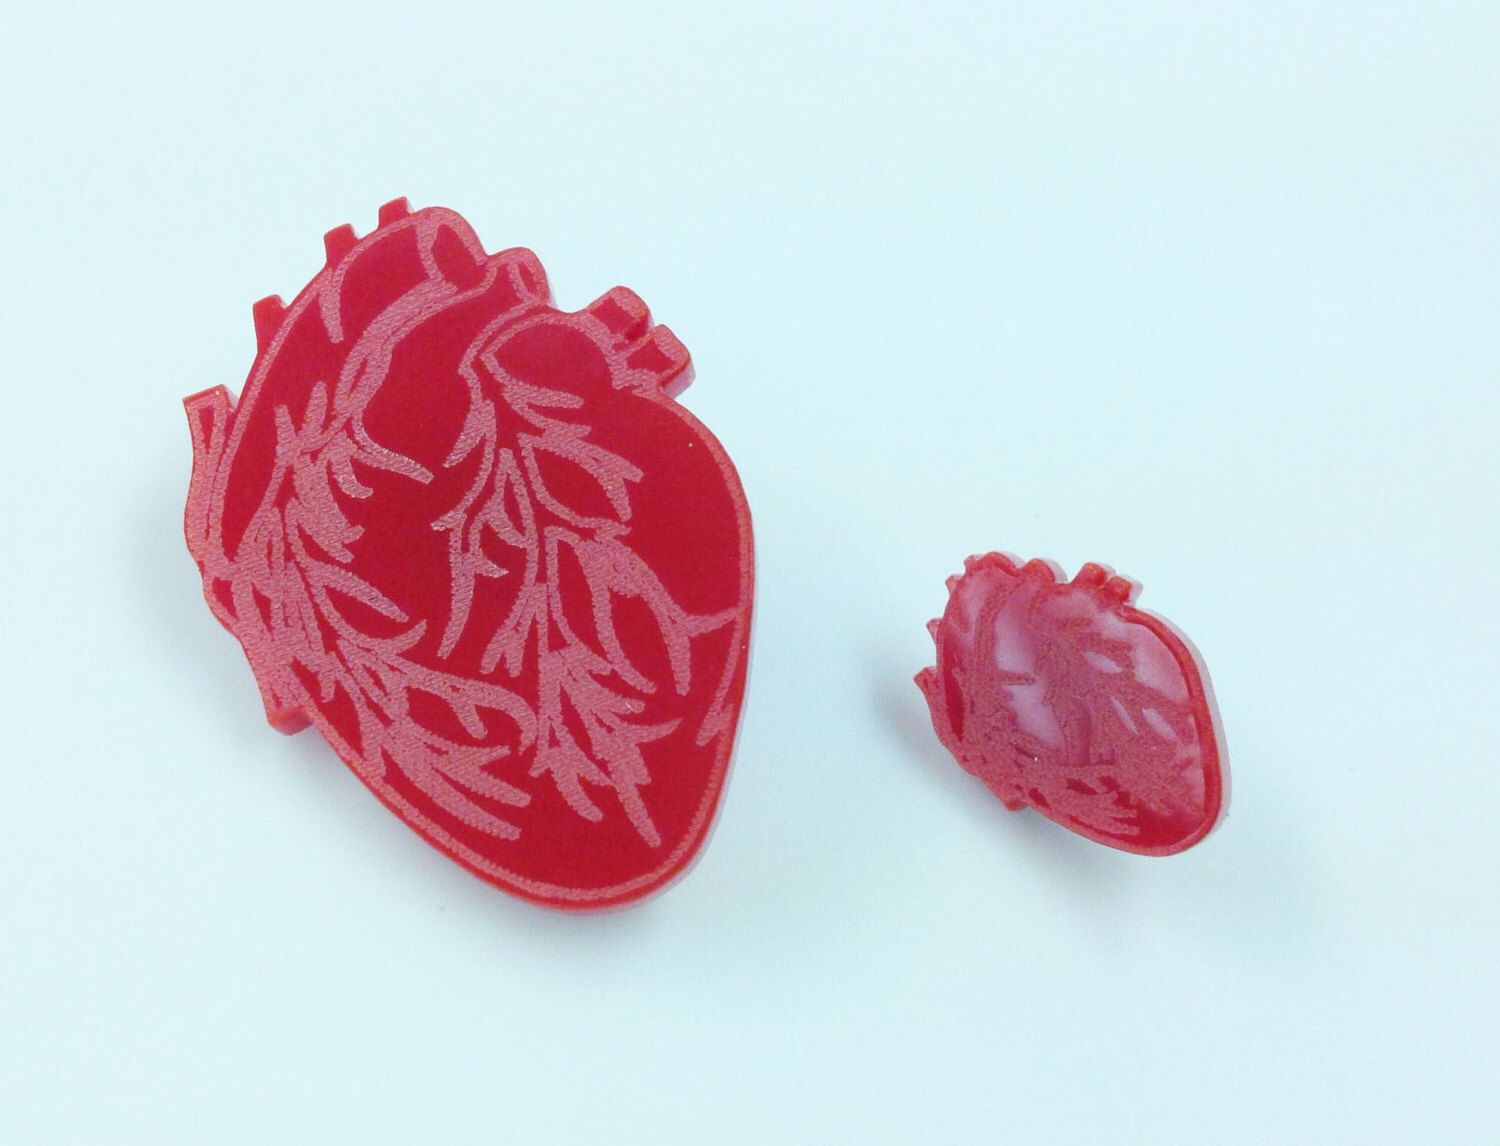 Red Anatomical Heart Lasercut Brooch Pin. by MaddisonCherie on Etsy https://www.etsy.com/listing/205007311/red-anatomical-heart-lasercut-brooch-pin